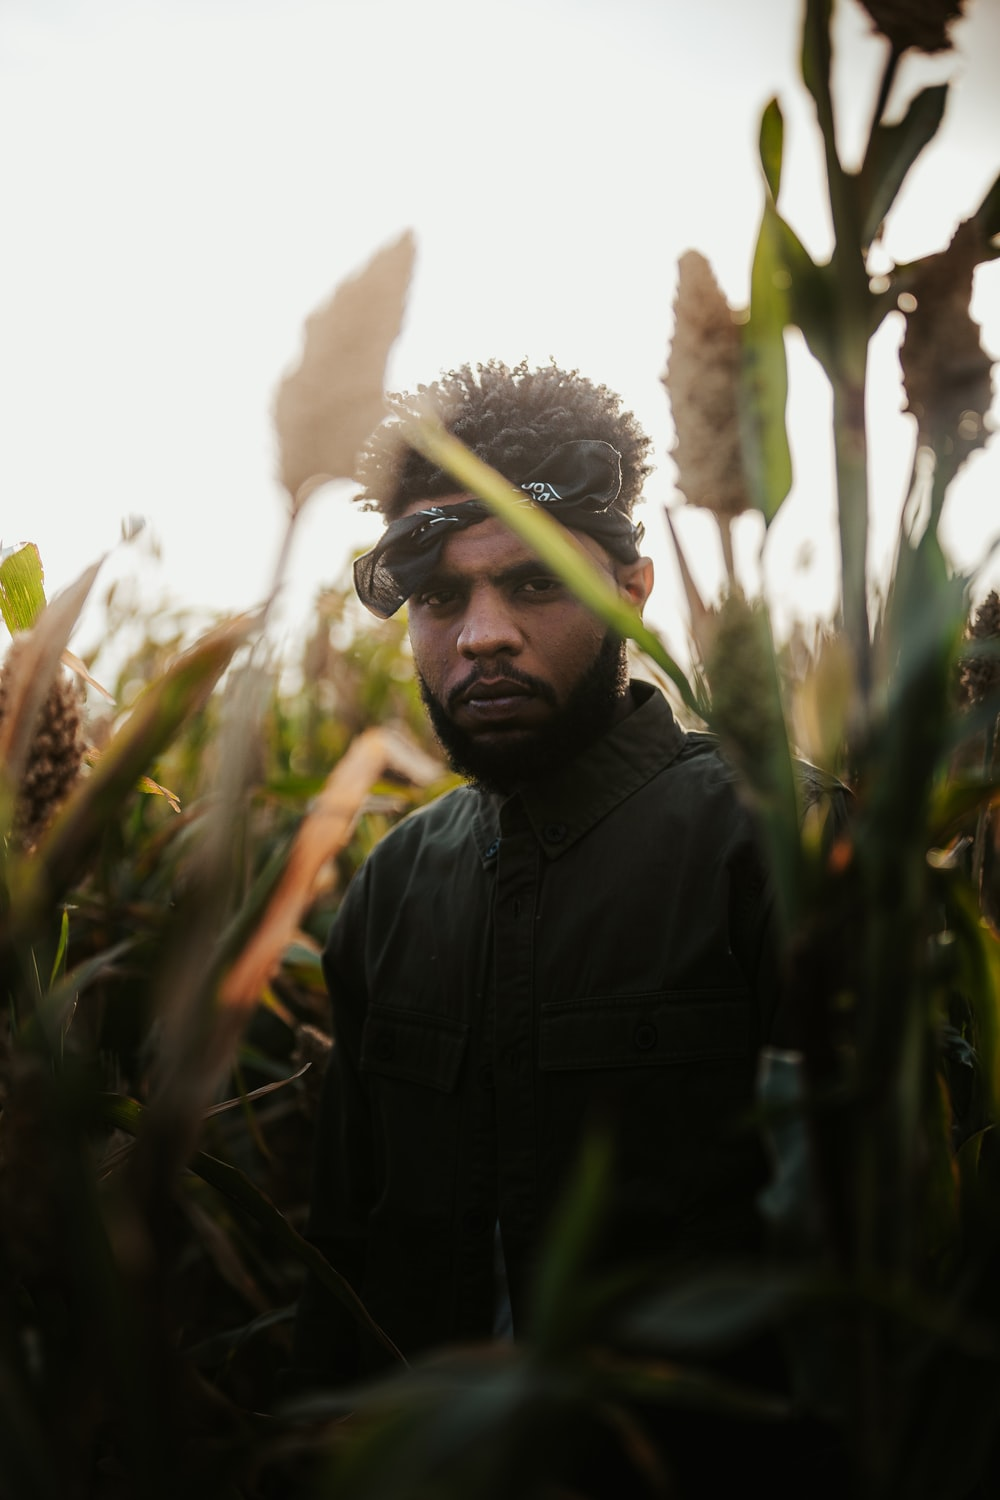 man in black jacket standing in the middle of sunflower field during daytime